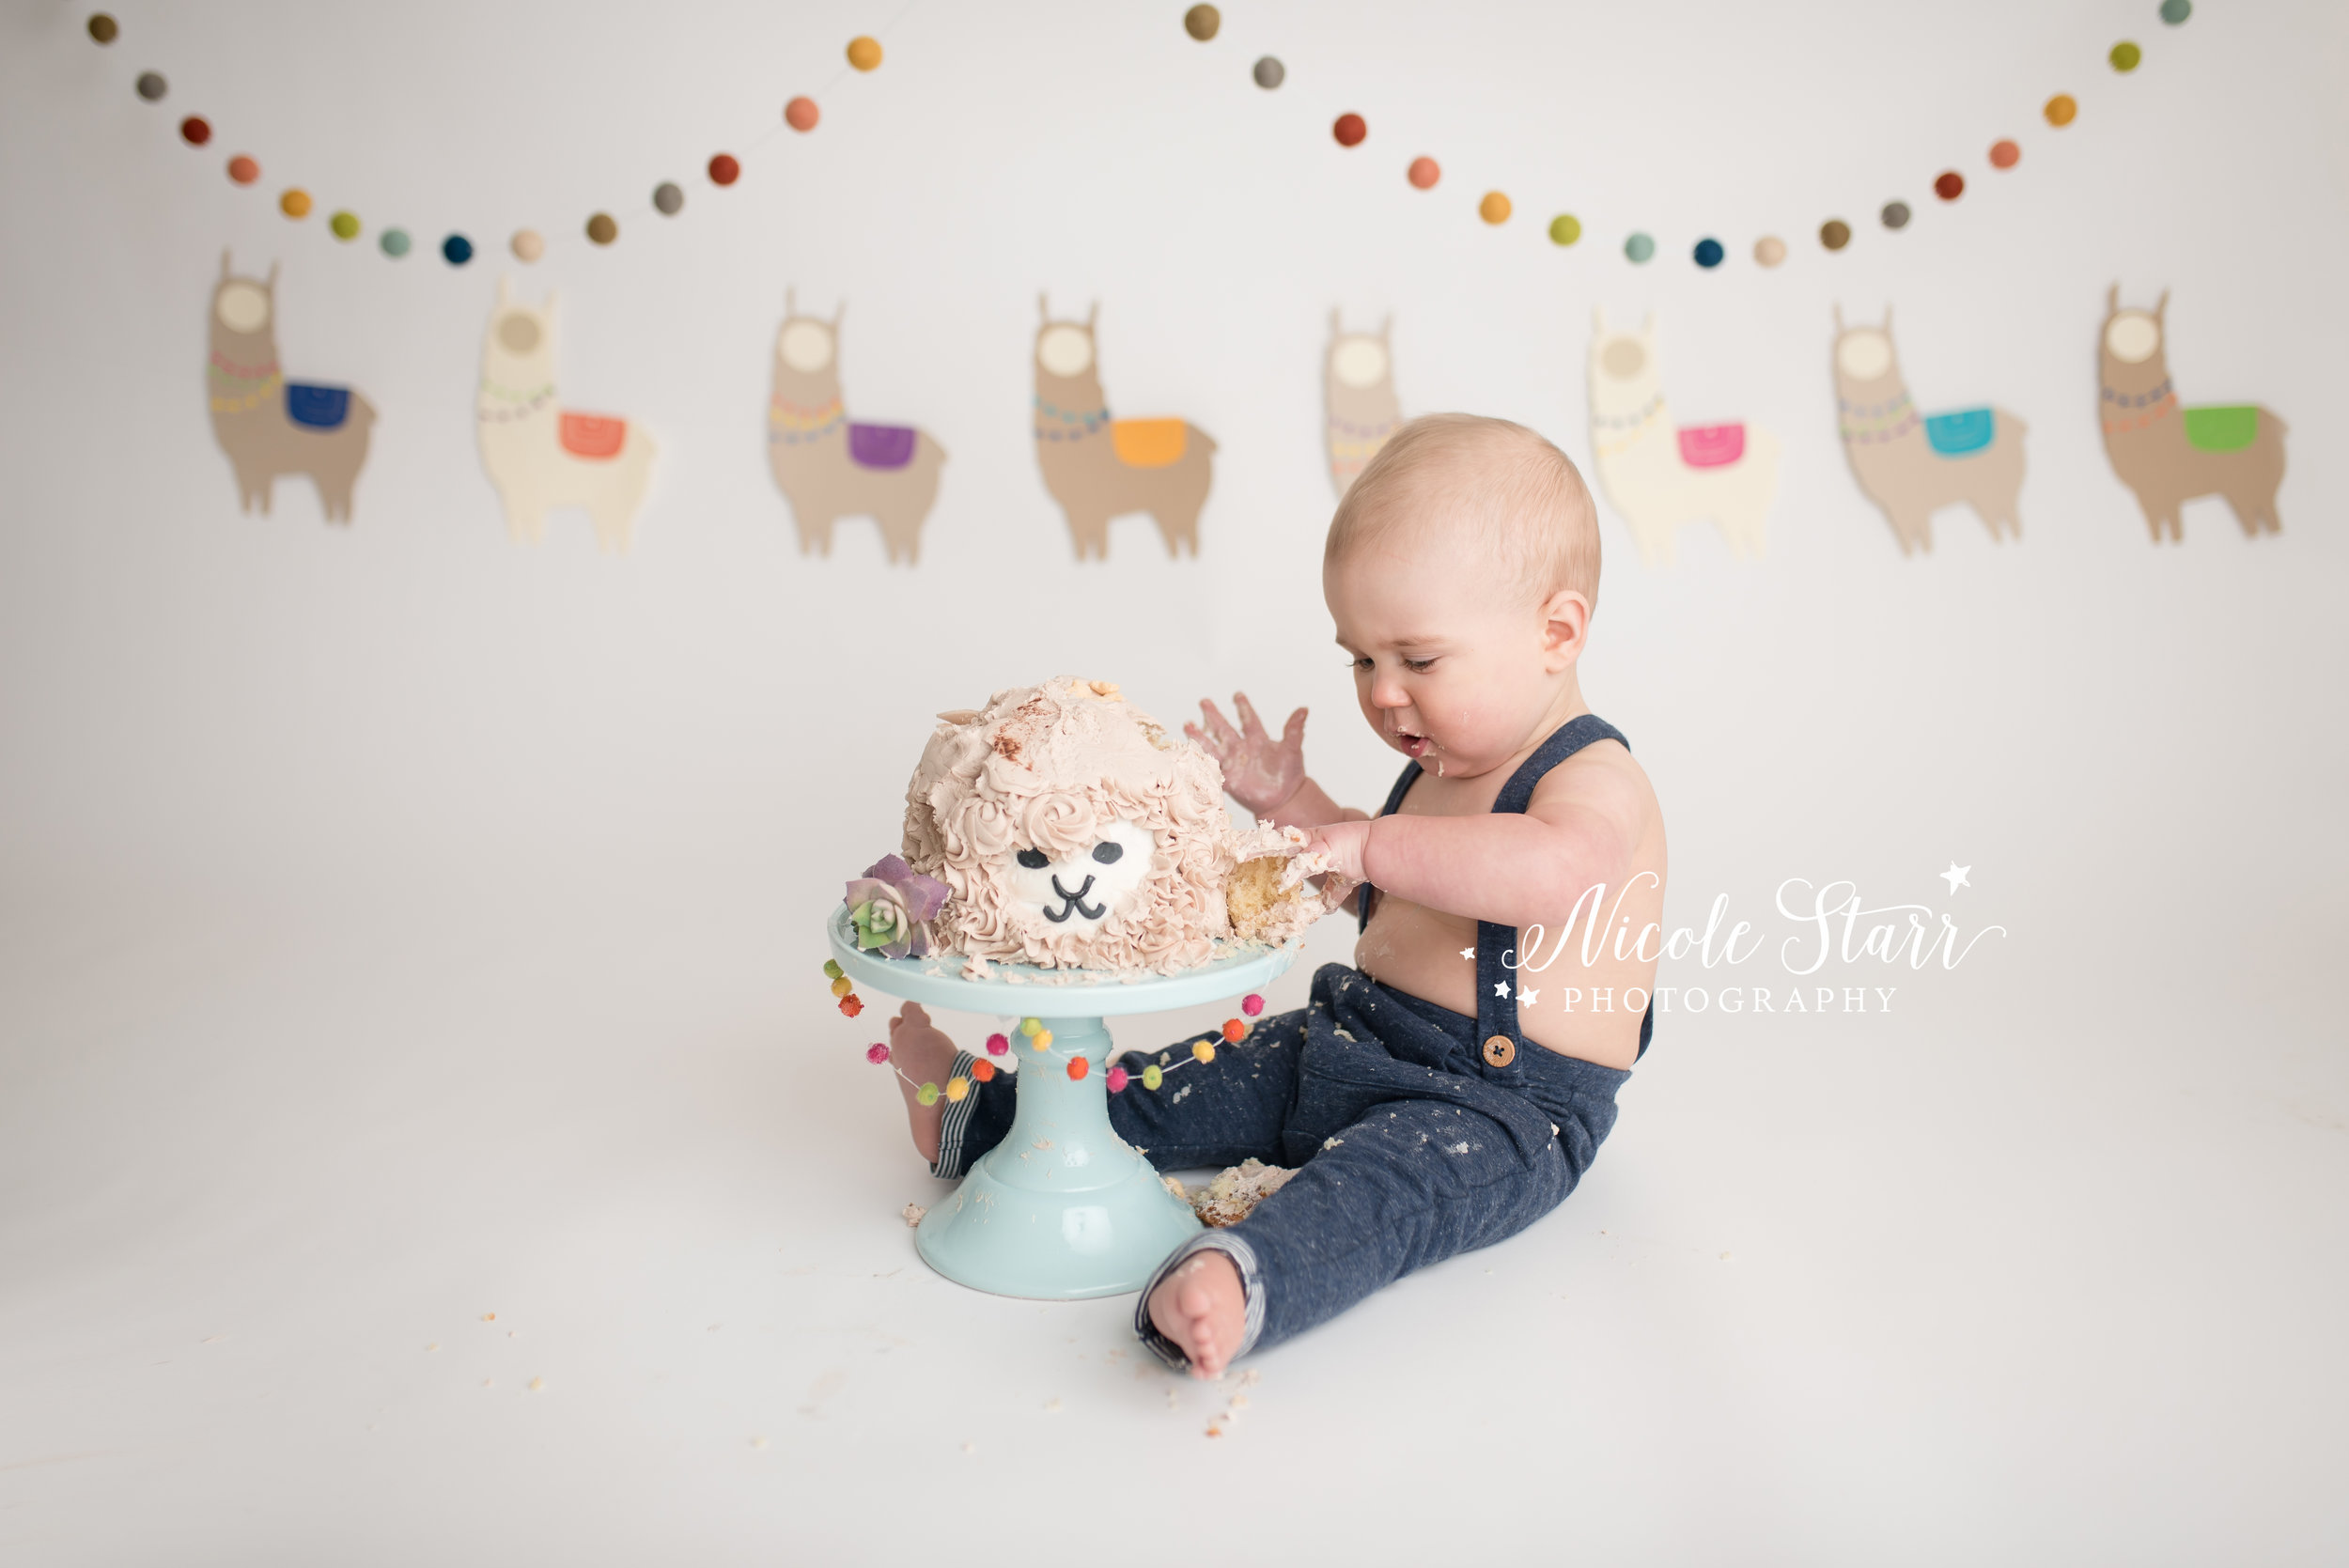 llama cake smash, nicole starr photography, saratoga springs cake smash photographer-6.jpg